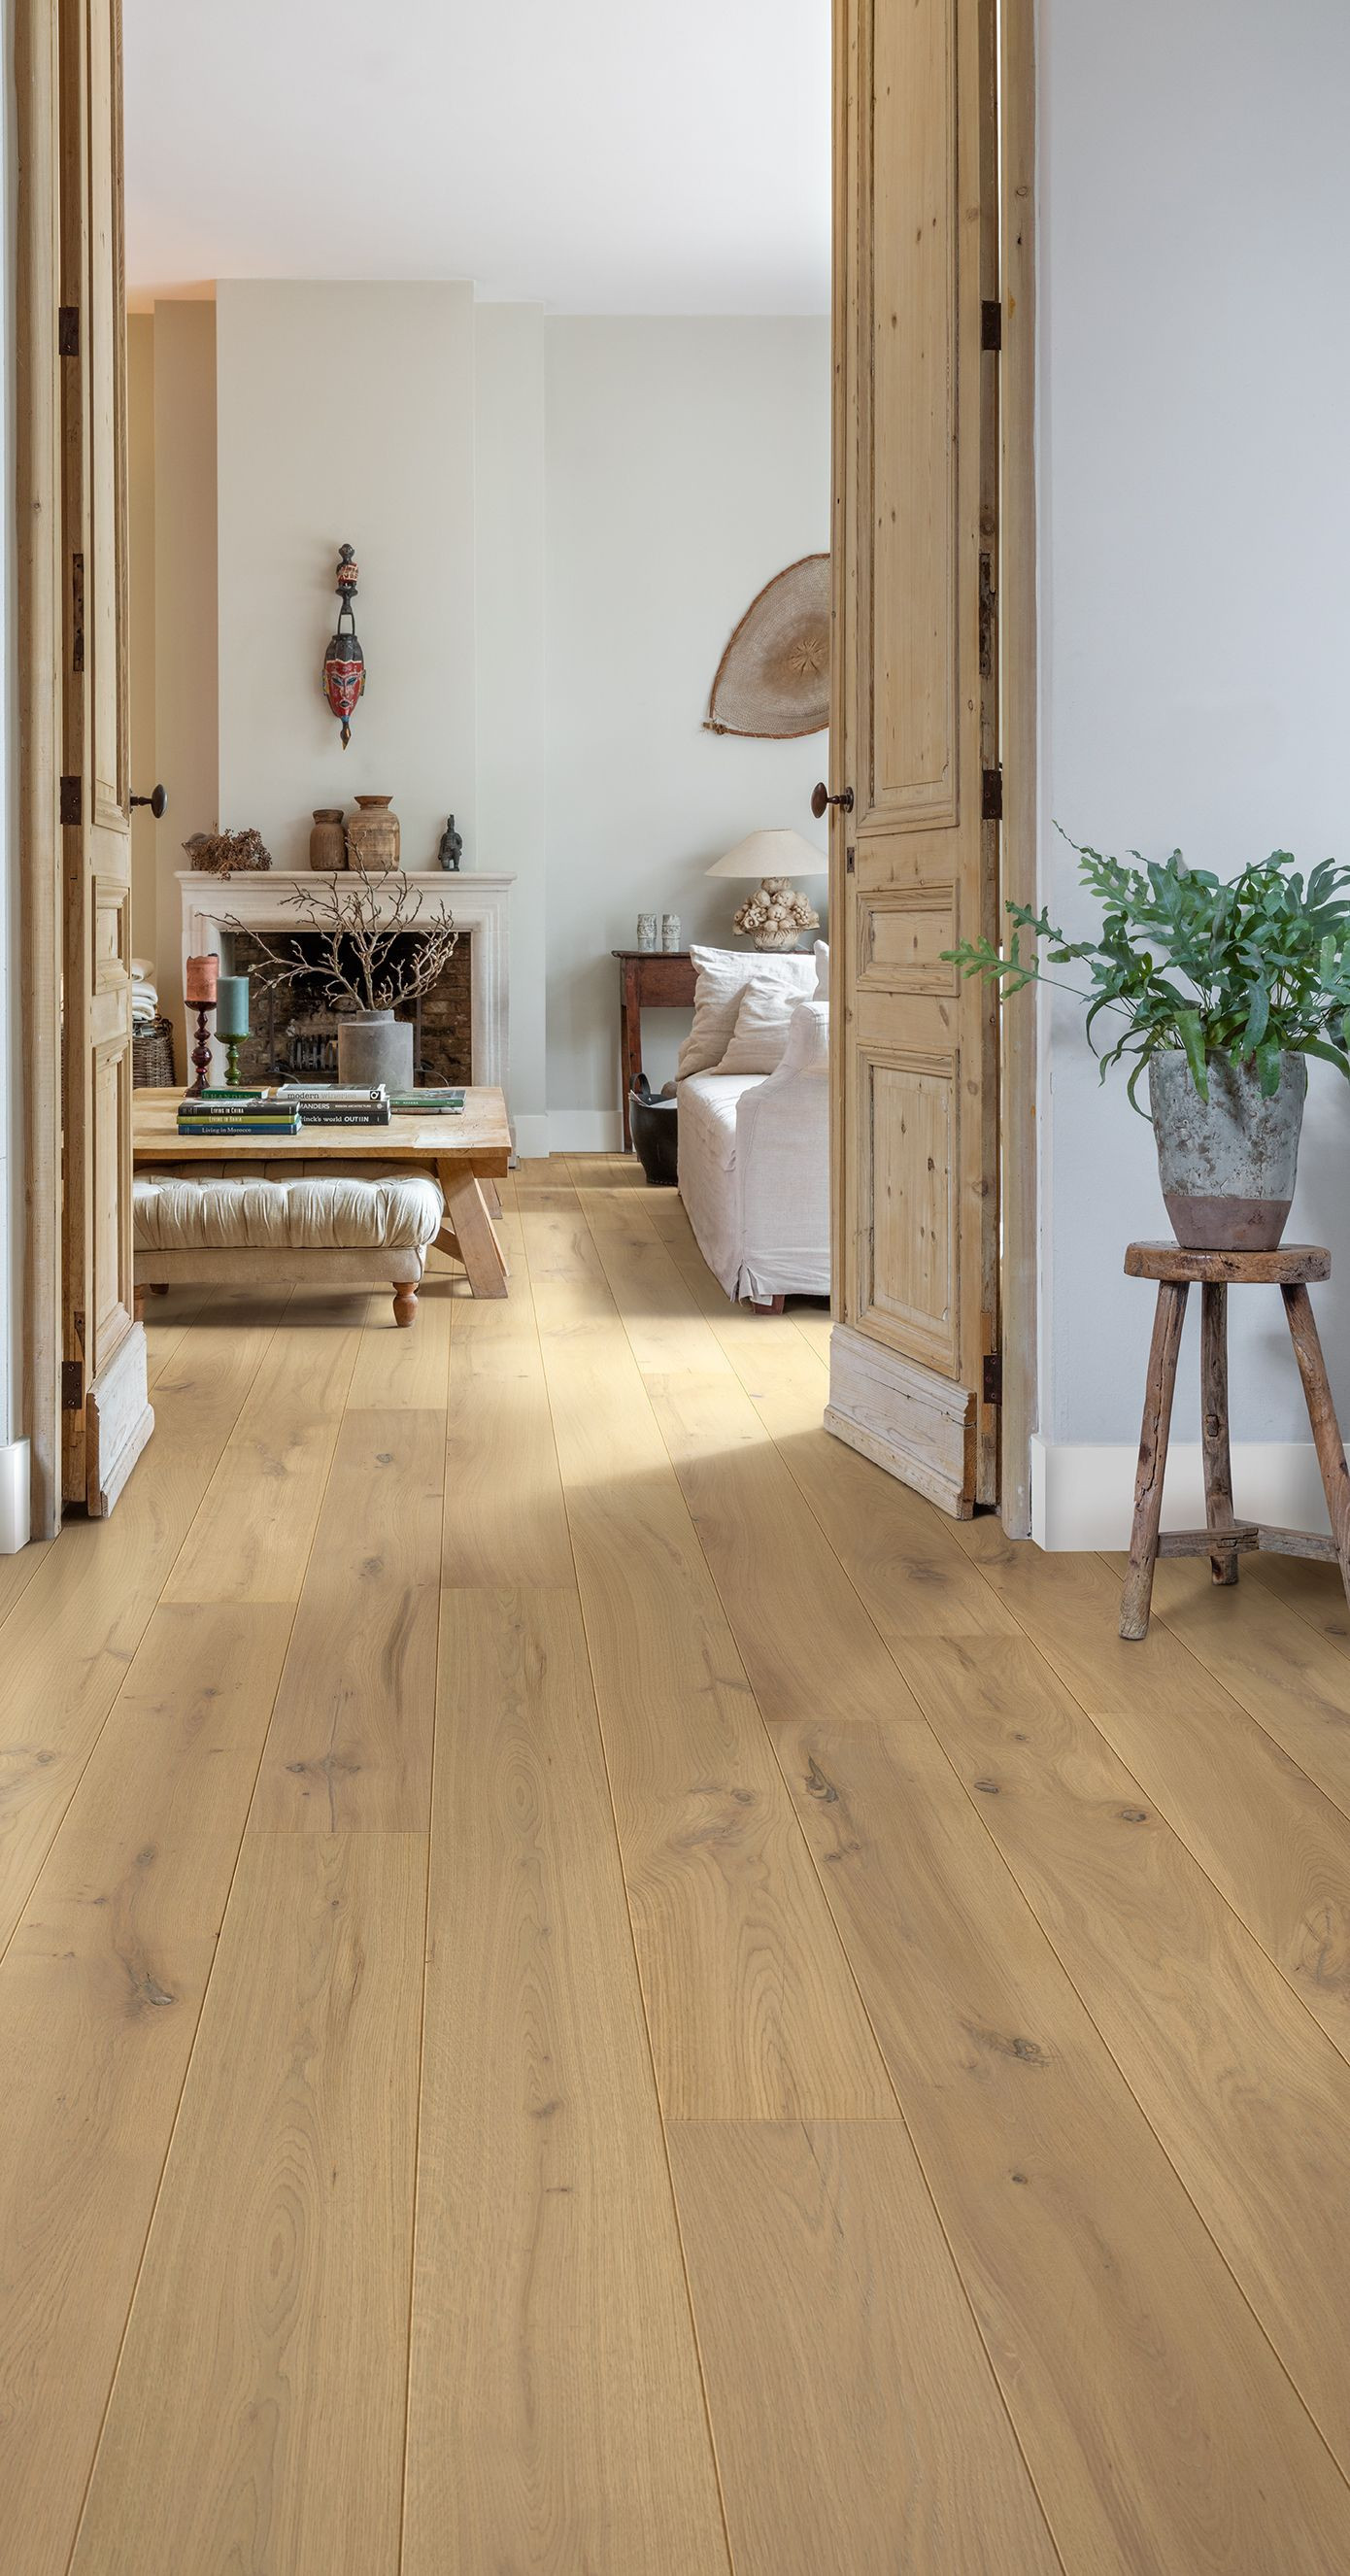 hardwood flooring jobs of wood flooring ideas kronotex amazon harbour oak pinterest floor for quick step hardwood flooring palazzo summer oak extra matt pal3886 in a country living room to